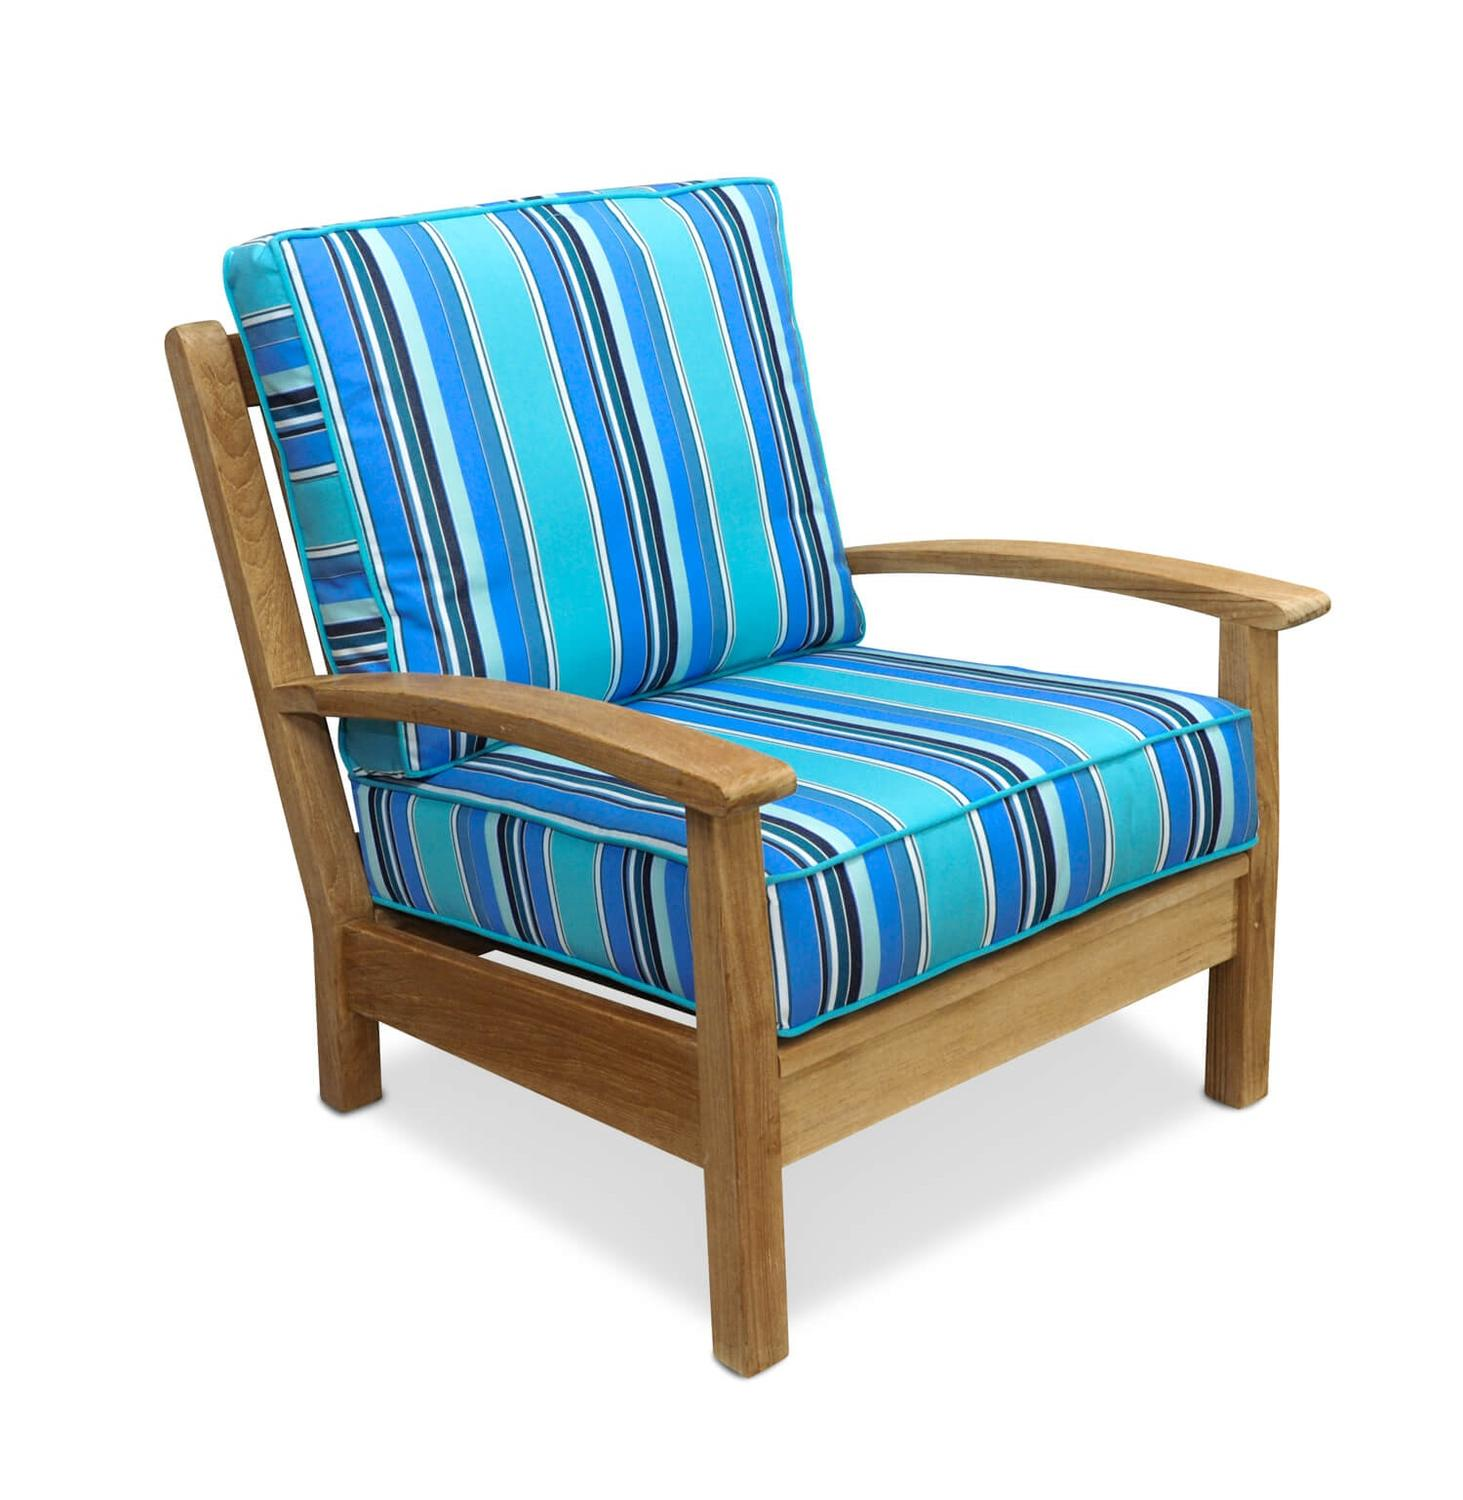 "34"" Natural Teak Deep Seating Outdoor Patio Lounge Chair with Blue Stripe Cushions"